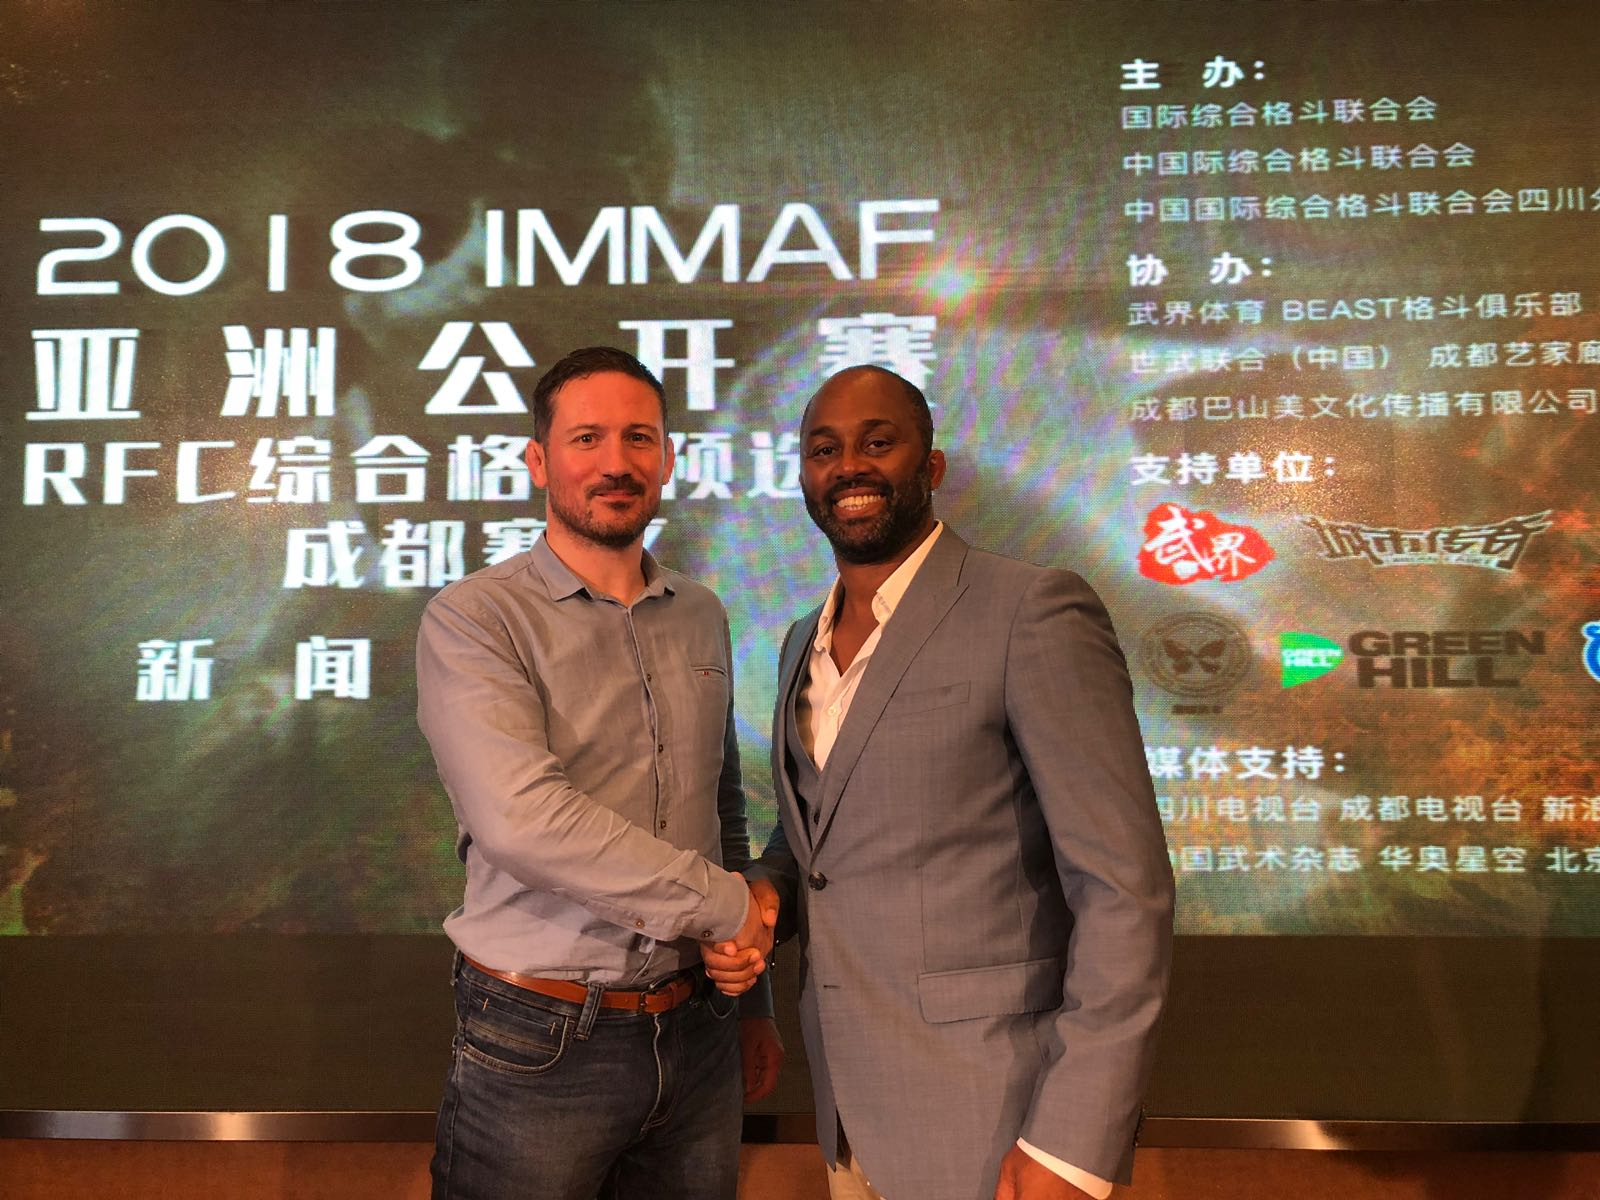 Coach John Kavanagh fronts MMA charge in China